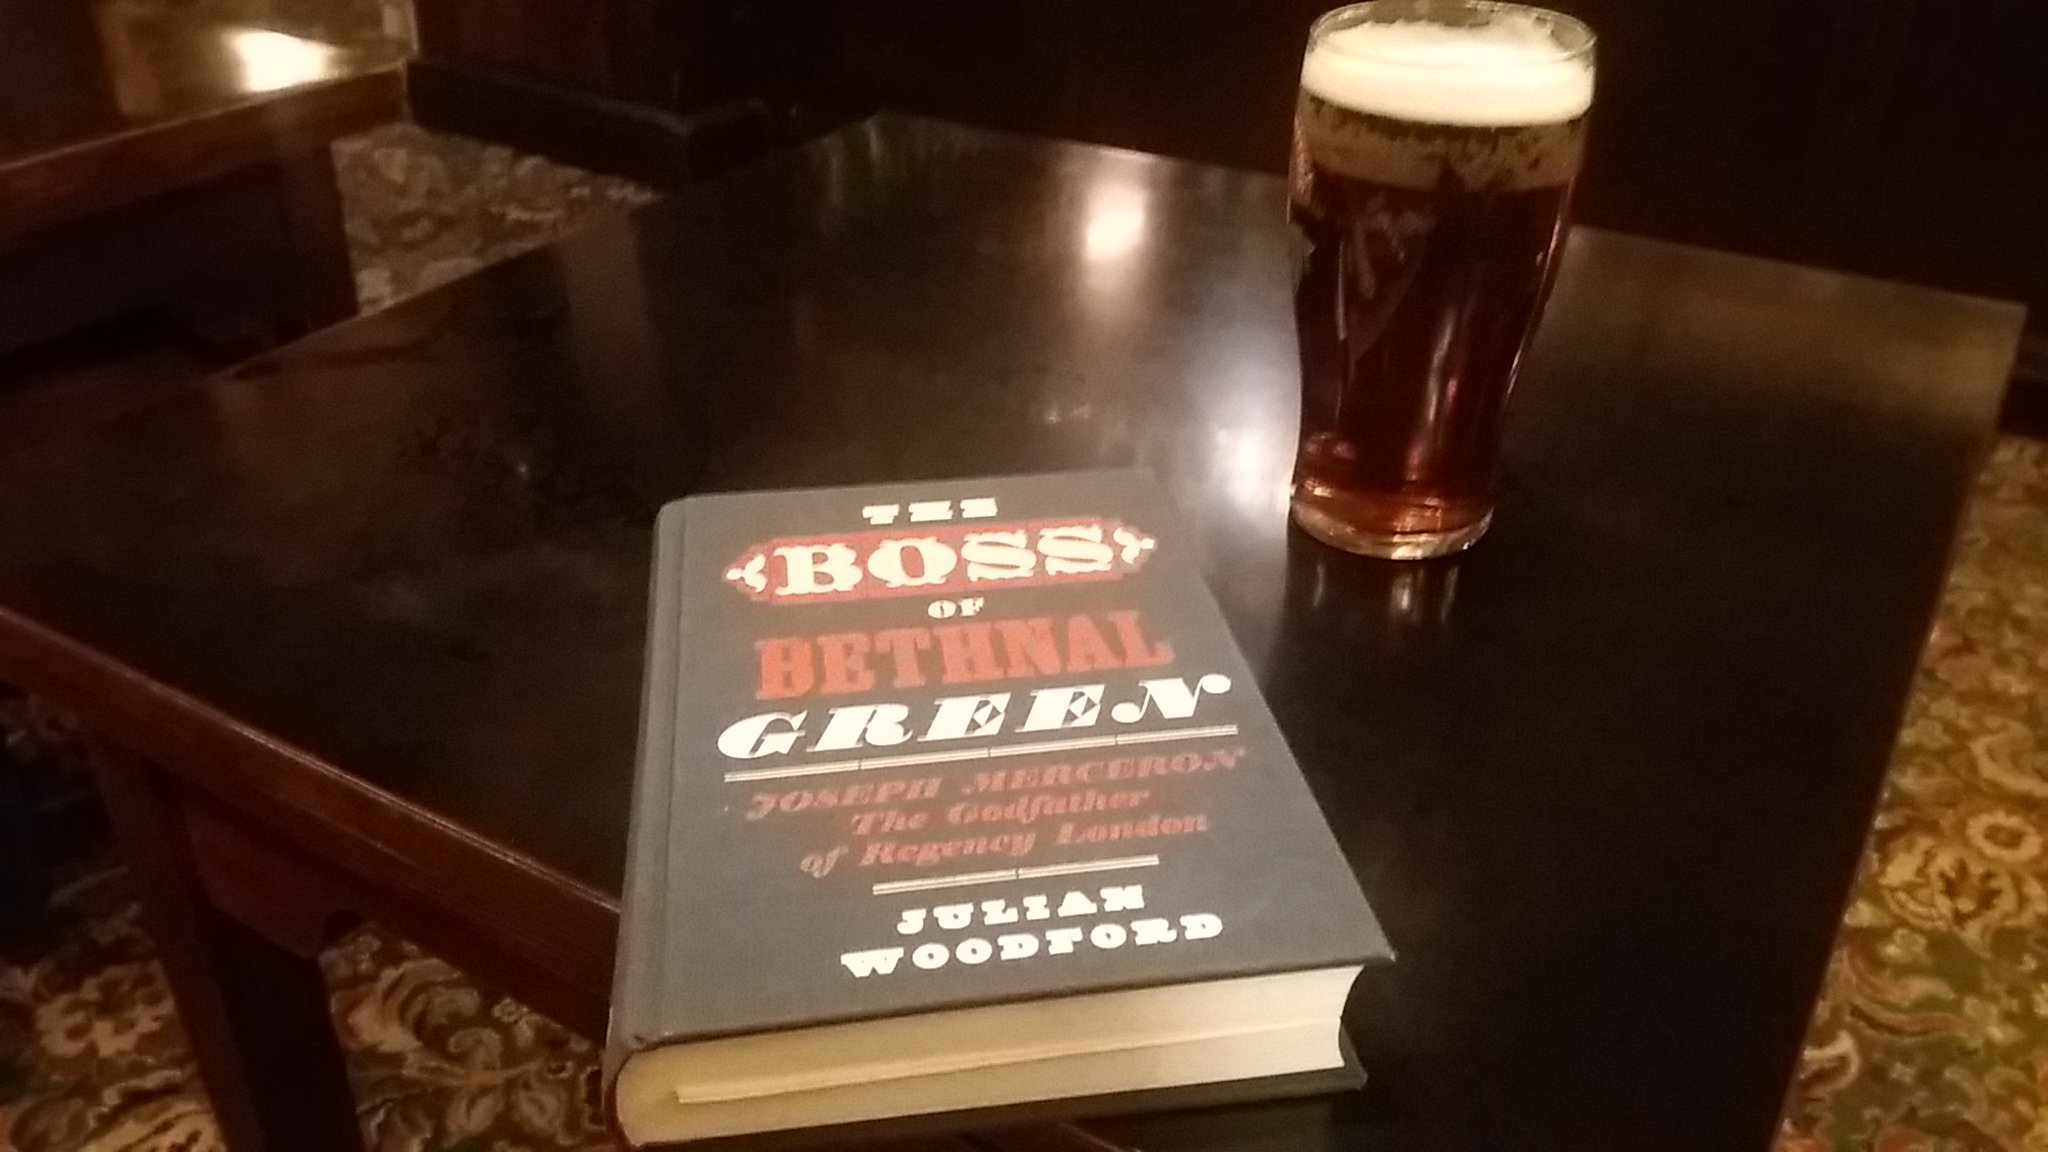 At #White Cross #NorthCray. Enjoying combination of lovely @Harveys1790 and excellent book Boss of #BethnalGreen  about @josephmerceron https://t.co/xiWnfyBWOl